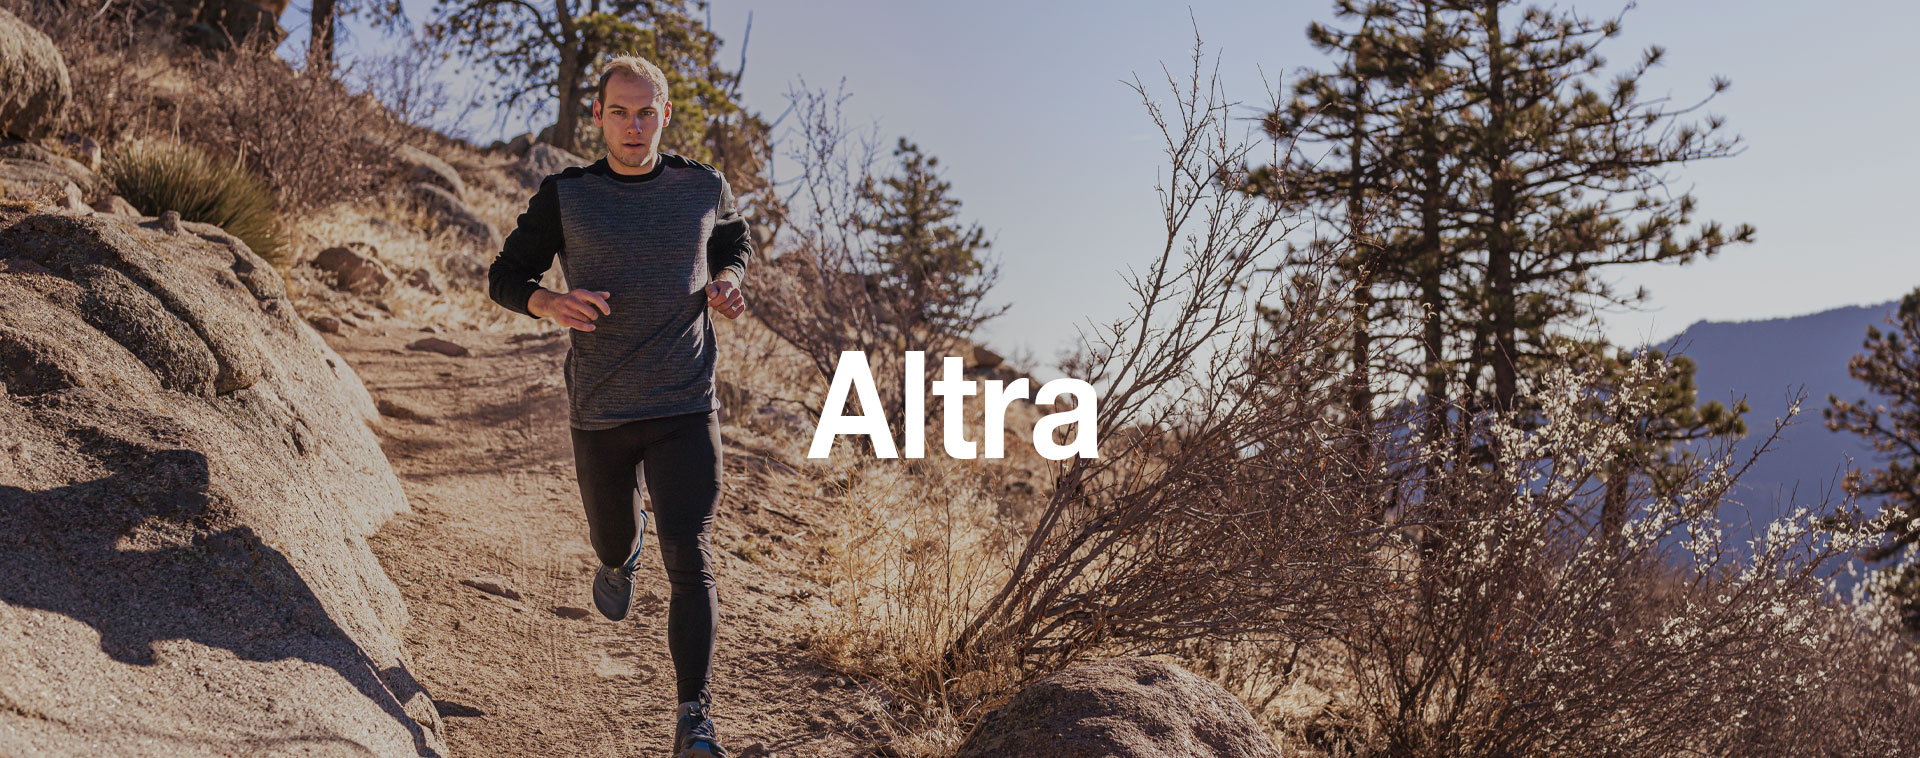 Mountain High Outfitters - Altra